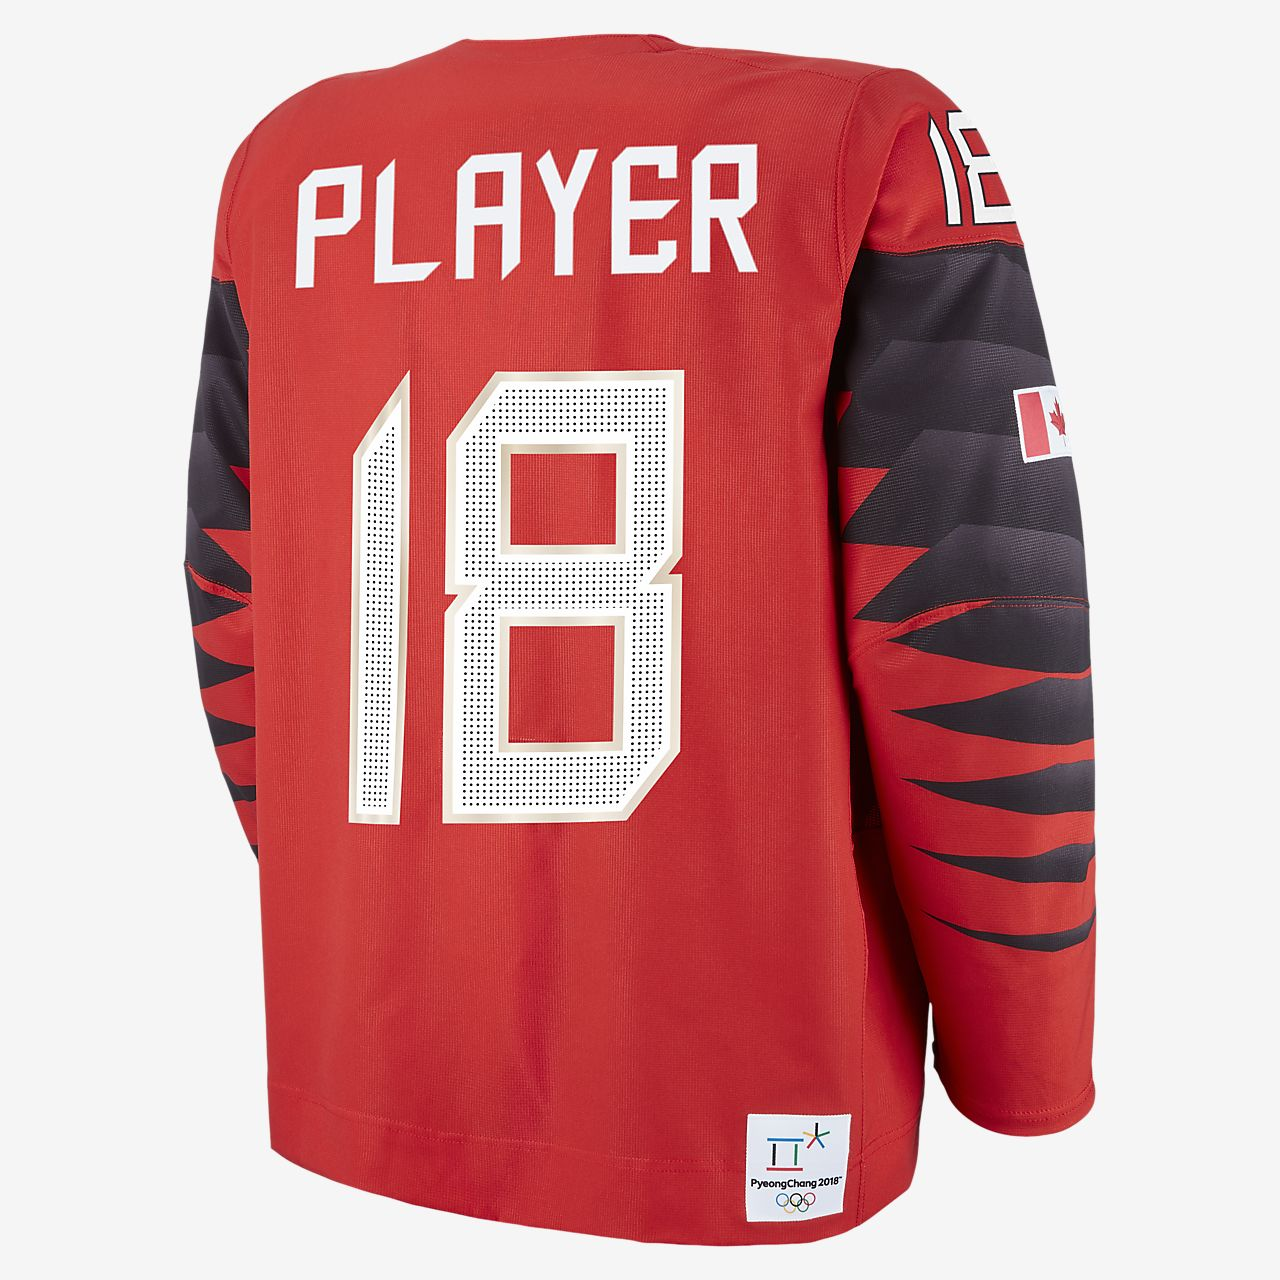 07fd6775 Nike Team Canada Replica Men's Hockey Jersey. Nike.com